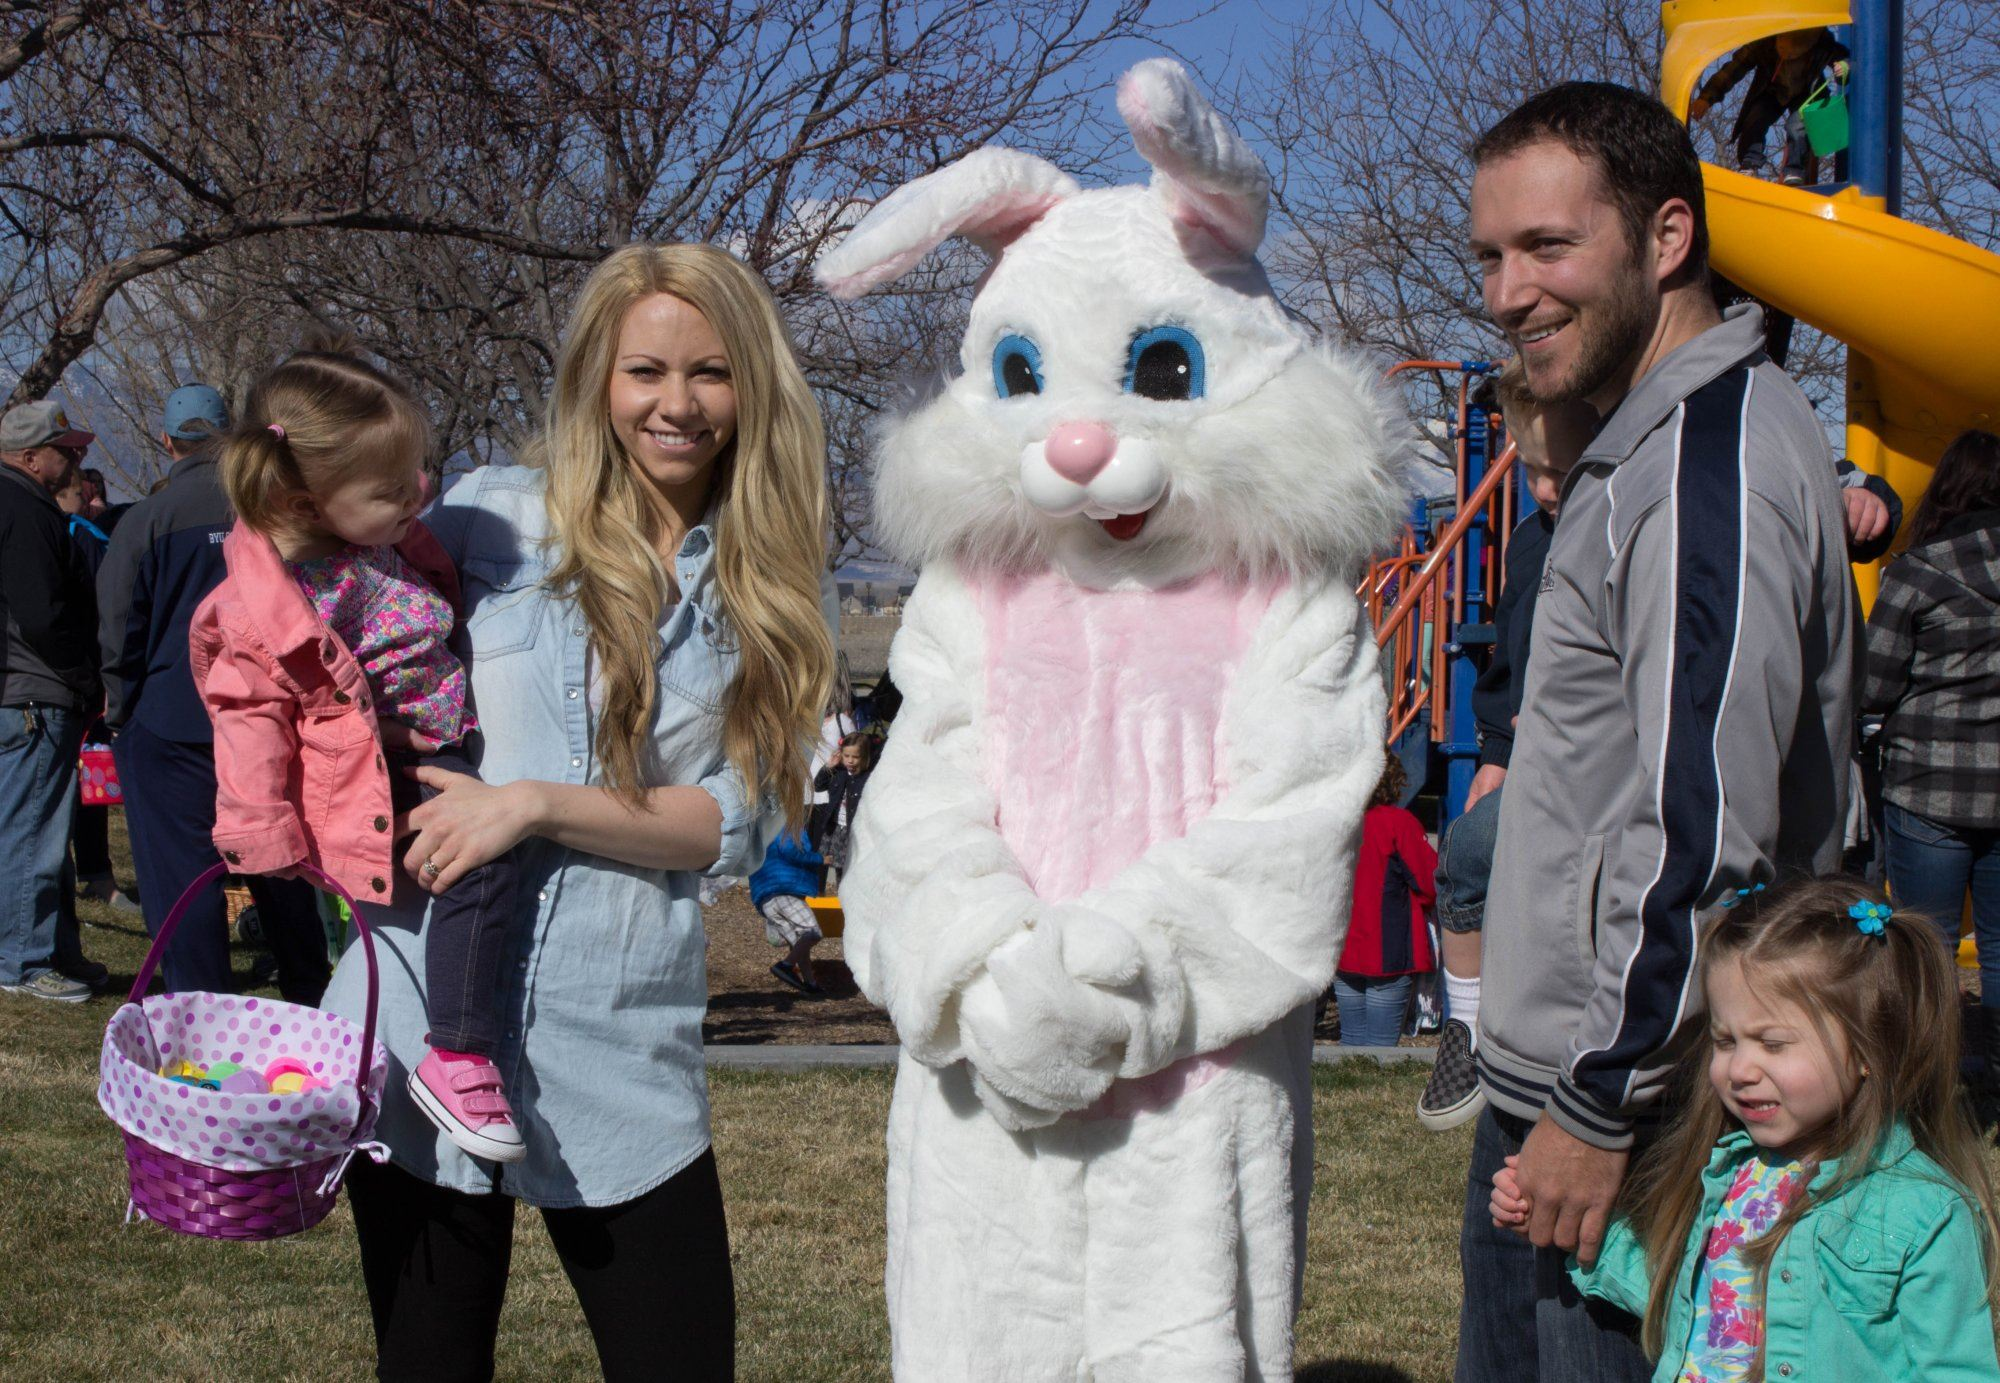 The Easter Bunny with a family.